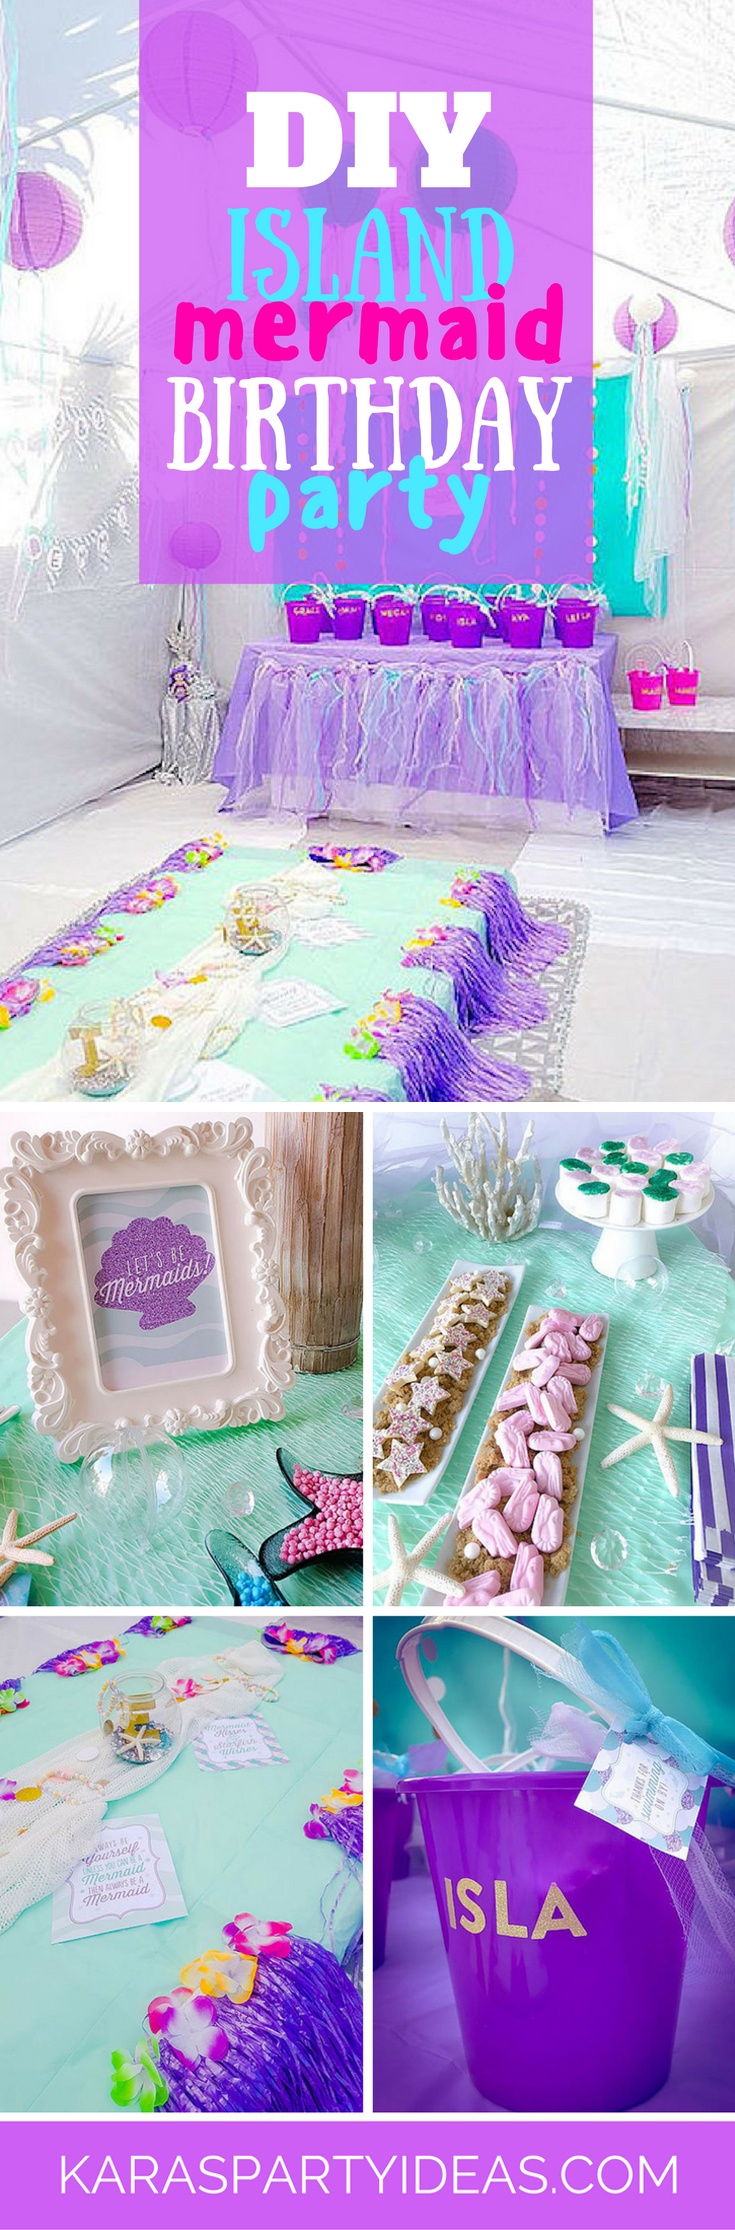 DIY Island Mermaid Birthday Party via Kara's Party Ideas - KarasPartyIdeas.com